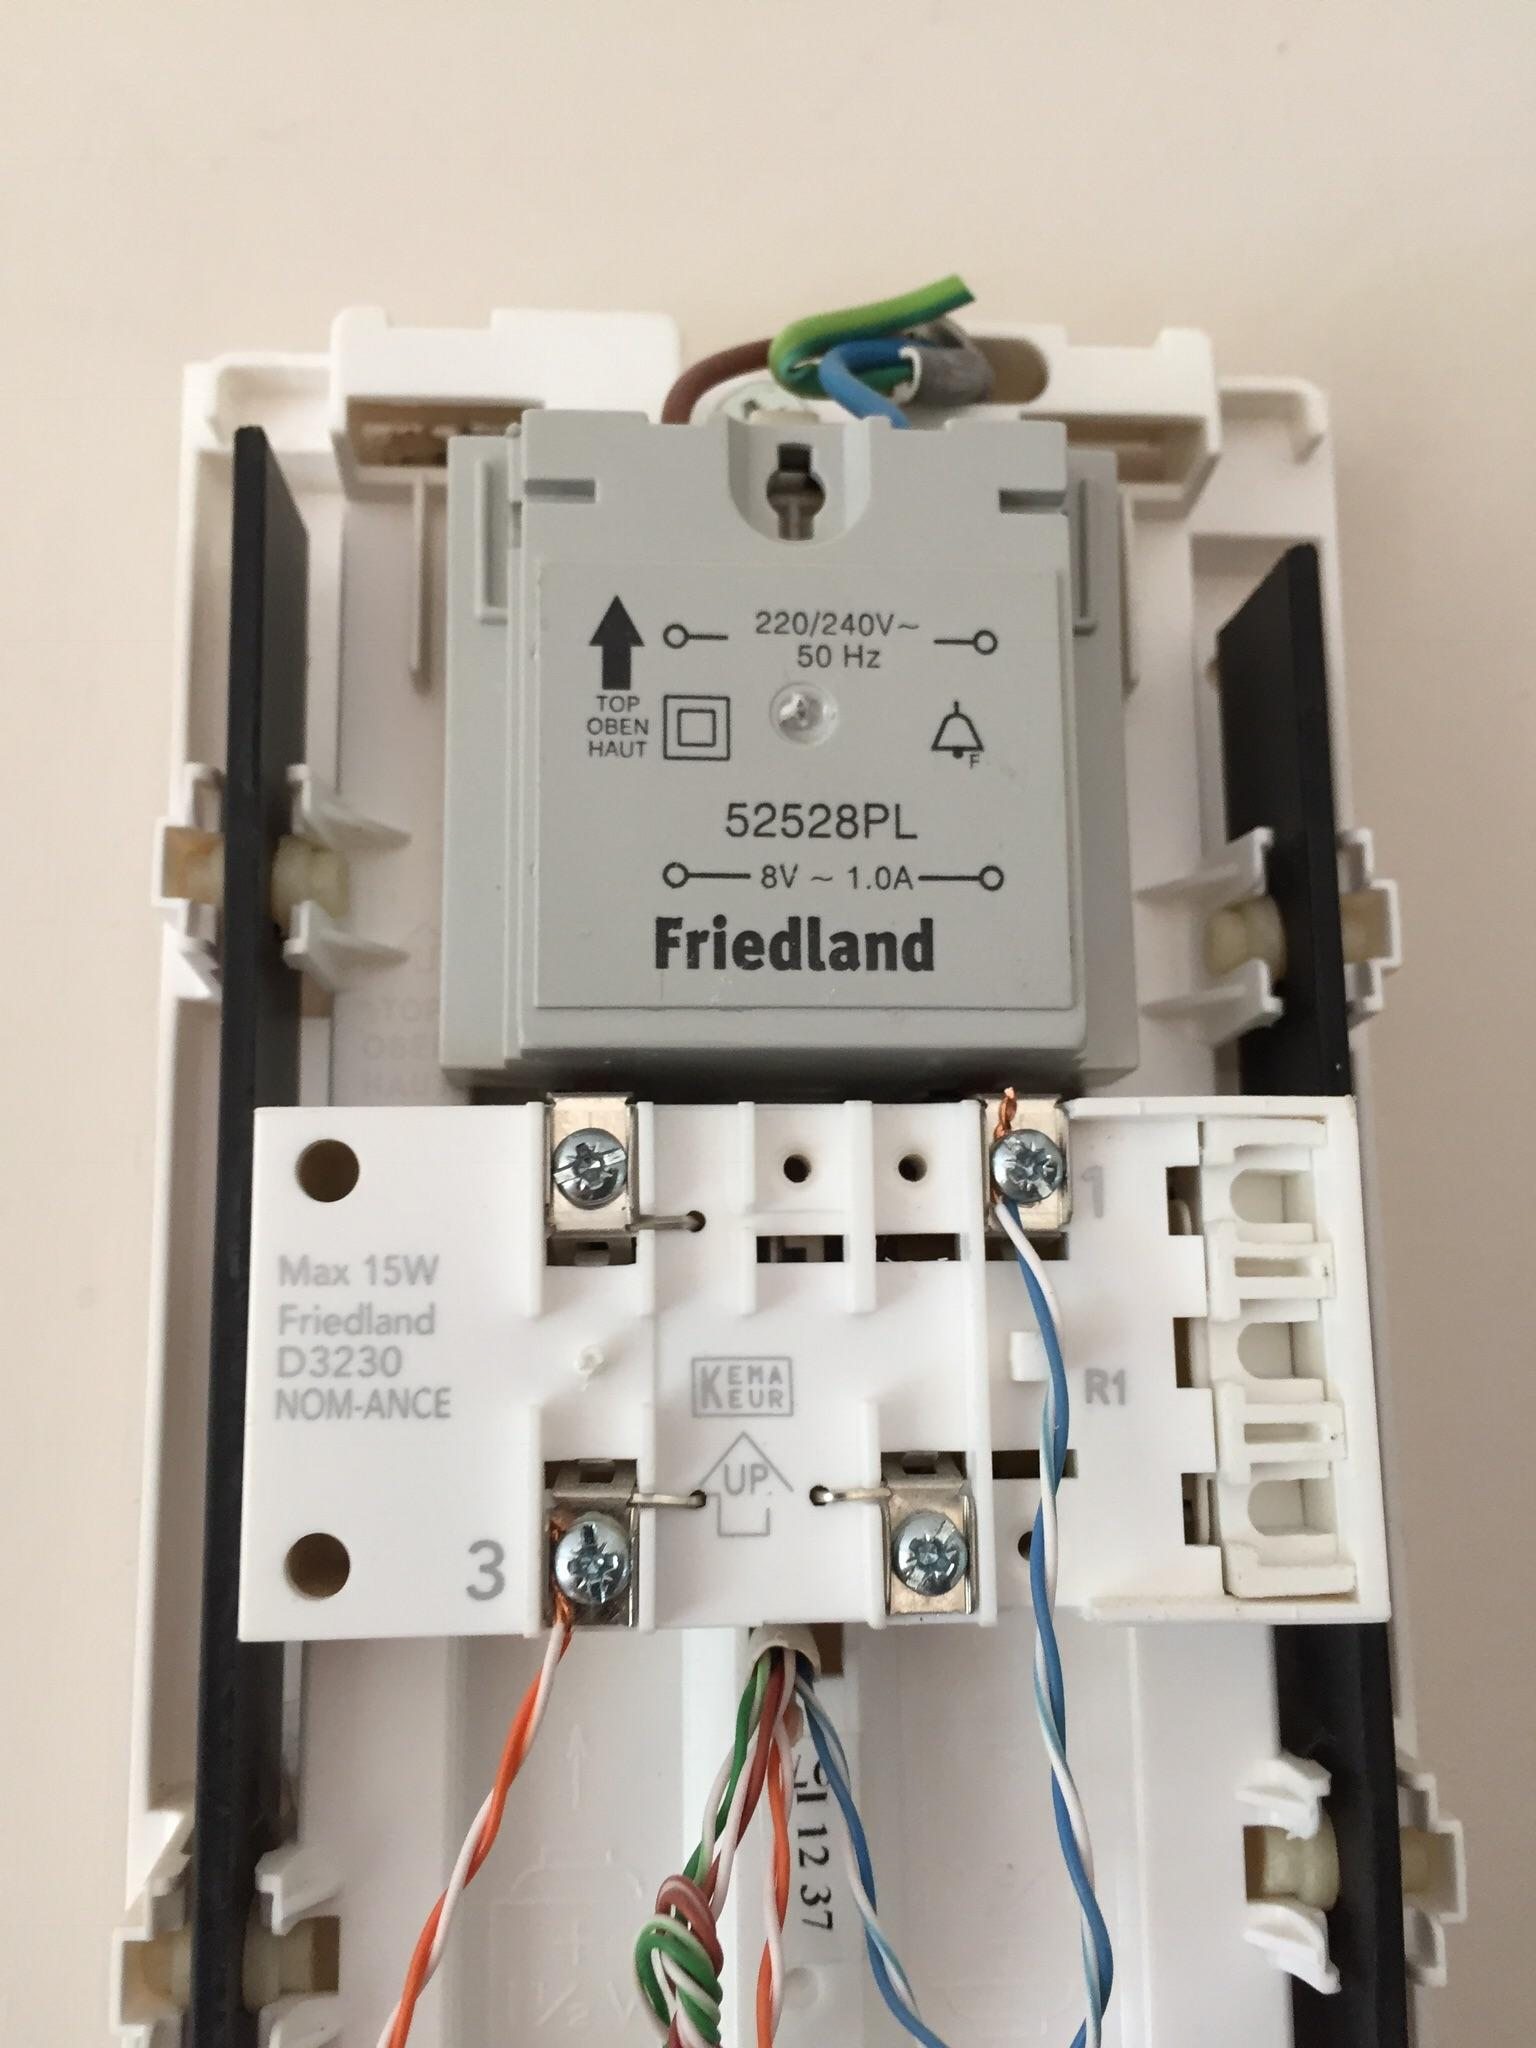 hight resolution of installing nest hello uk what are my options with the following transformer